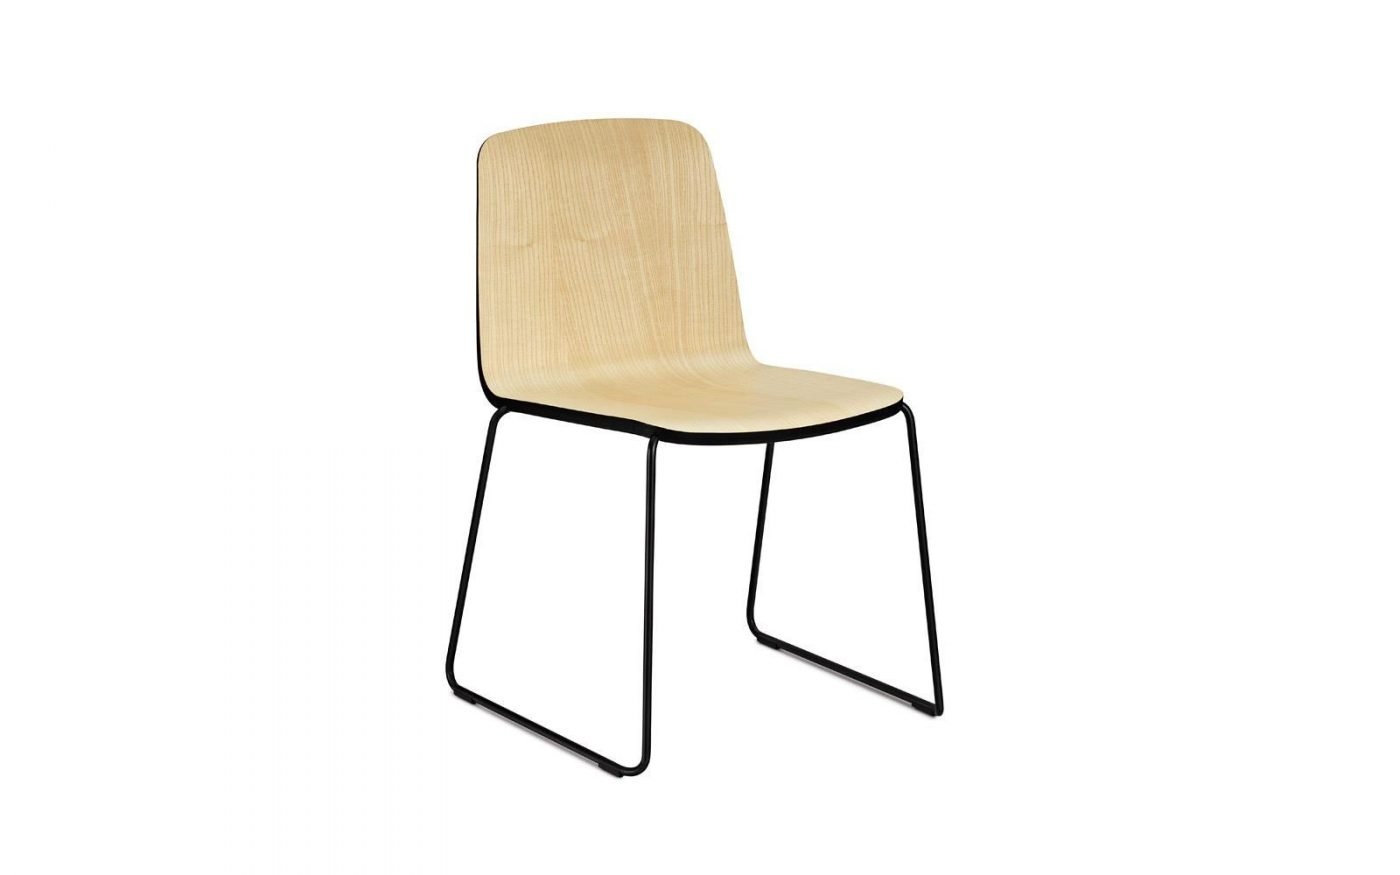 Just chair oak chrome normann copenhagen ash chair